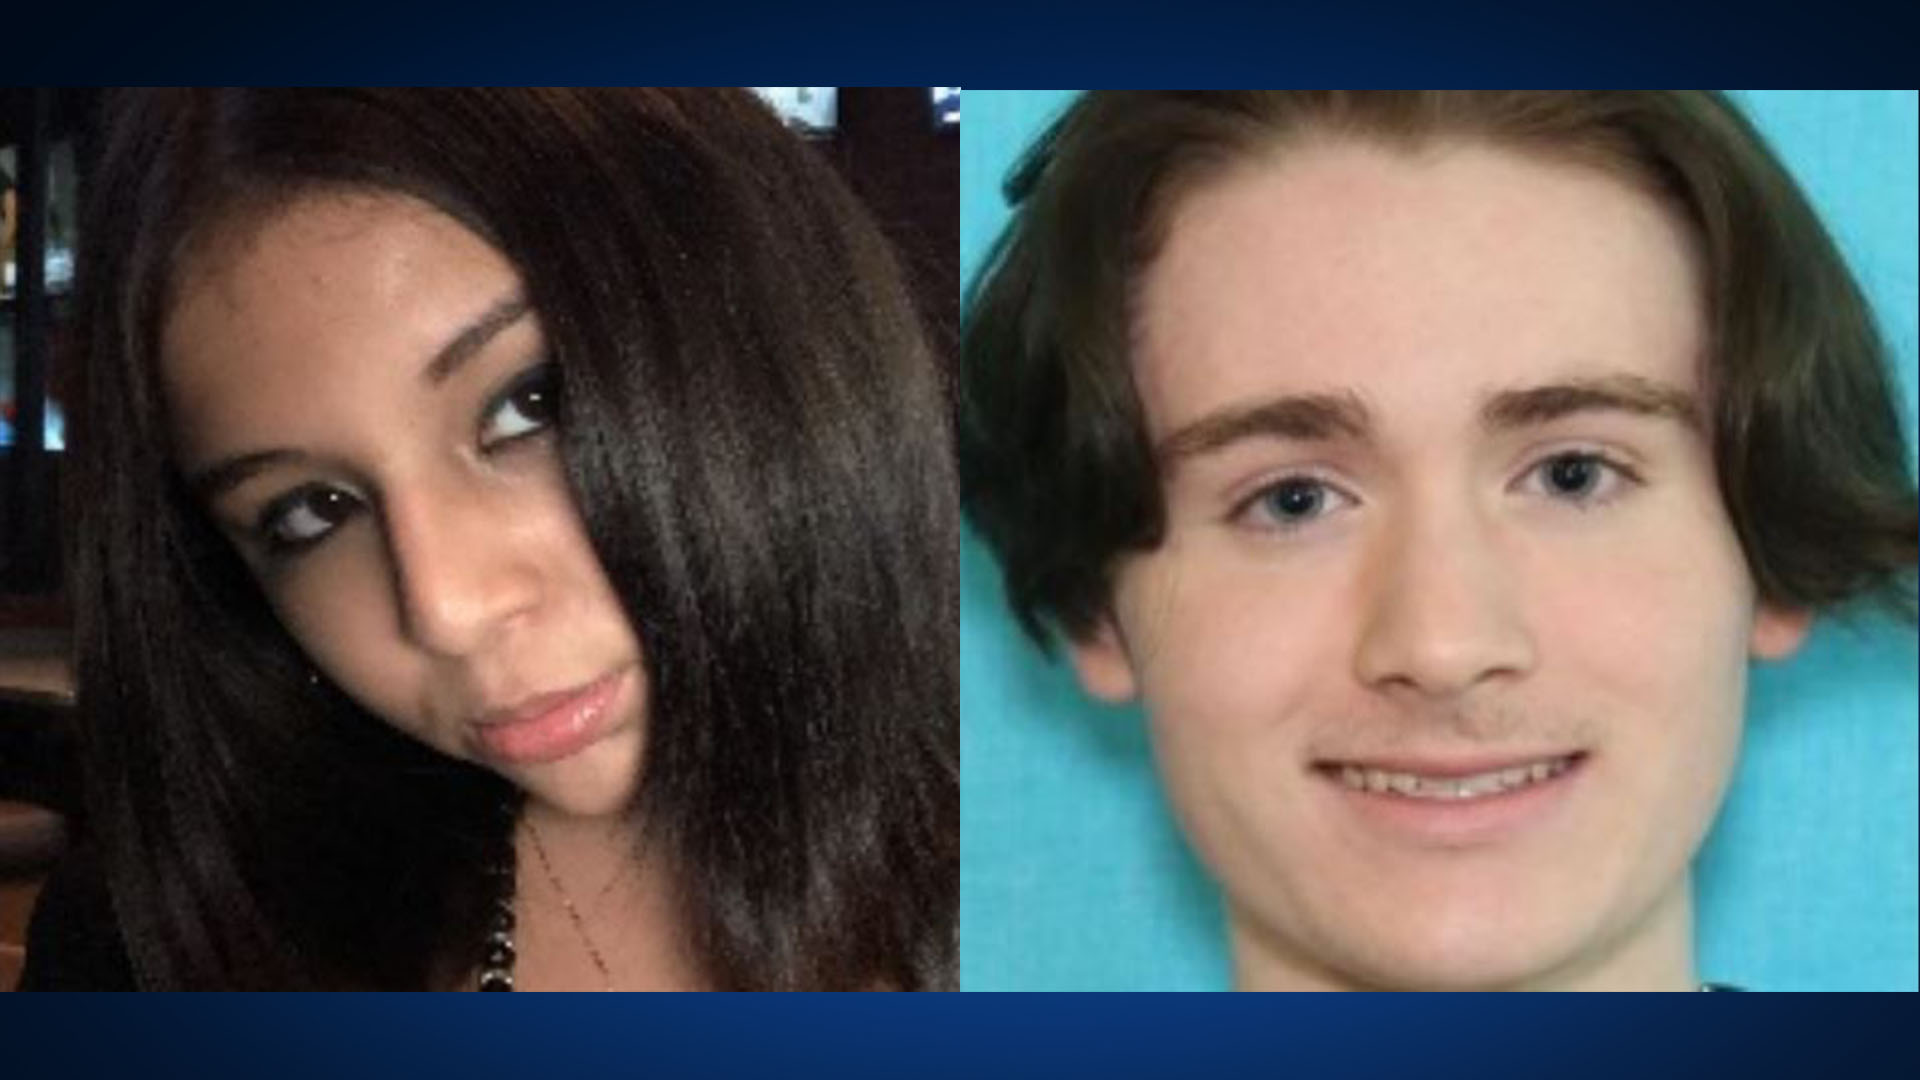 Amber Alert issued for Texas 13-year-old said to be with older man 6